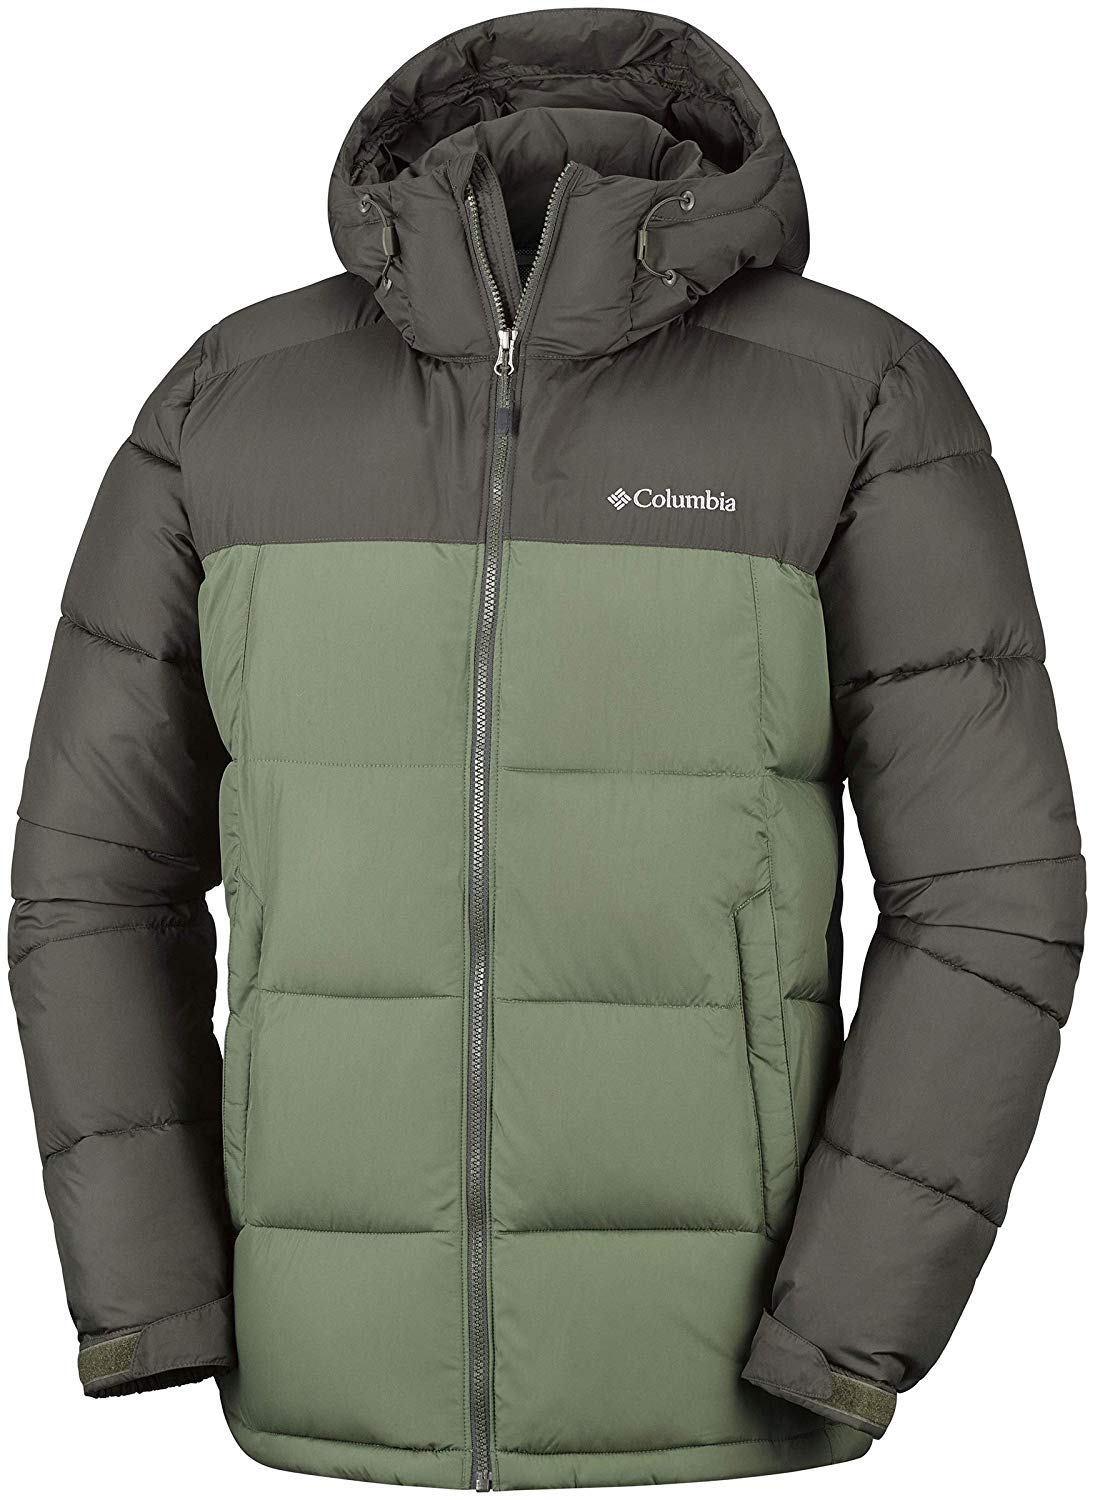 Columbia Chaqueta Impermeable con Capucha para Hombre, Pike Lake Hooded Jacket, Marrón (Peatmoss